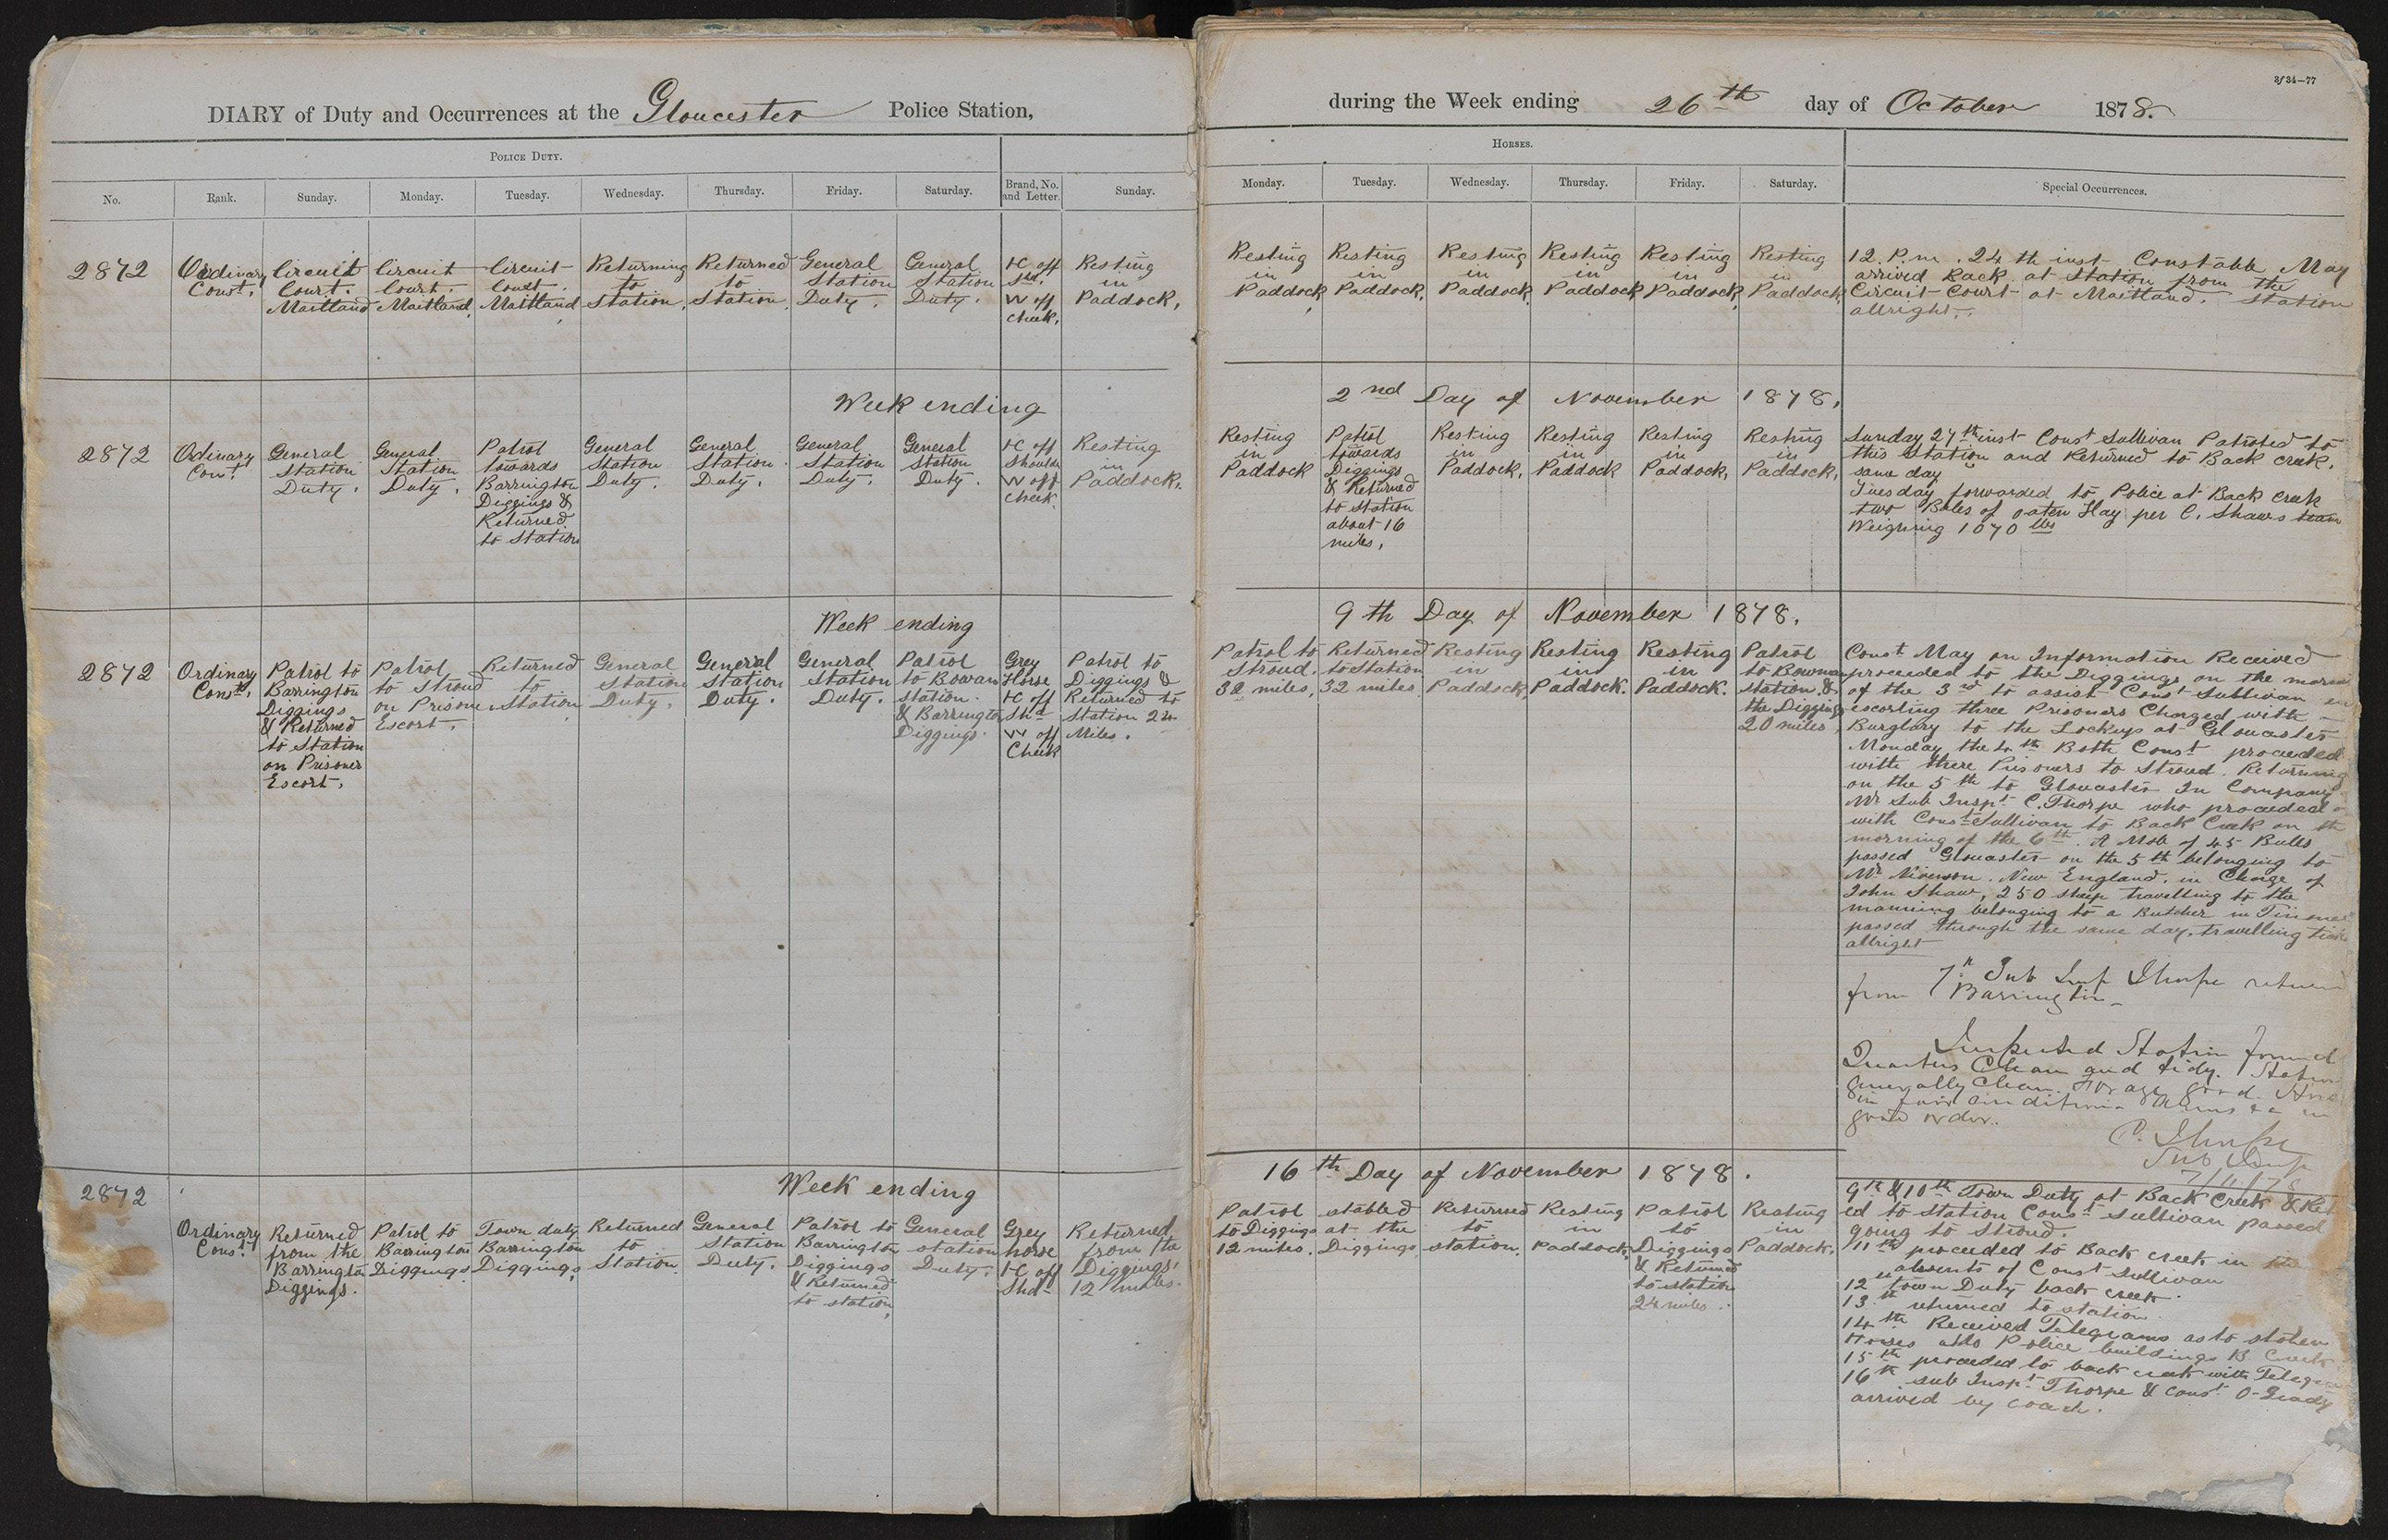 Diary of duty and occurrences at the Gloucester Police Station during the week ending the 26th day of October 1878